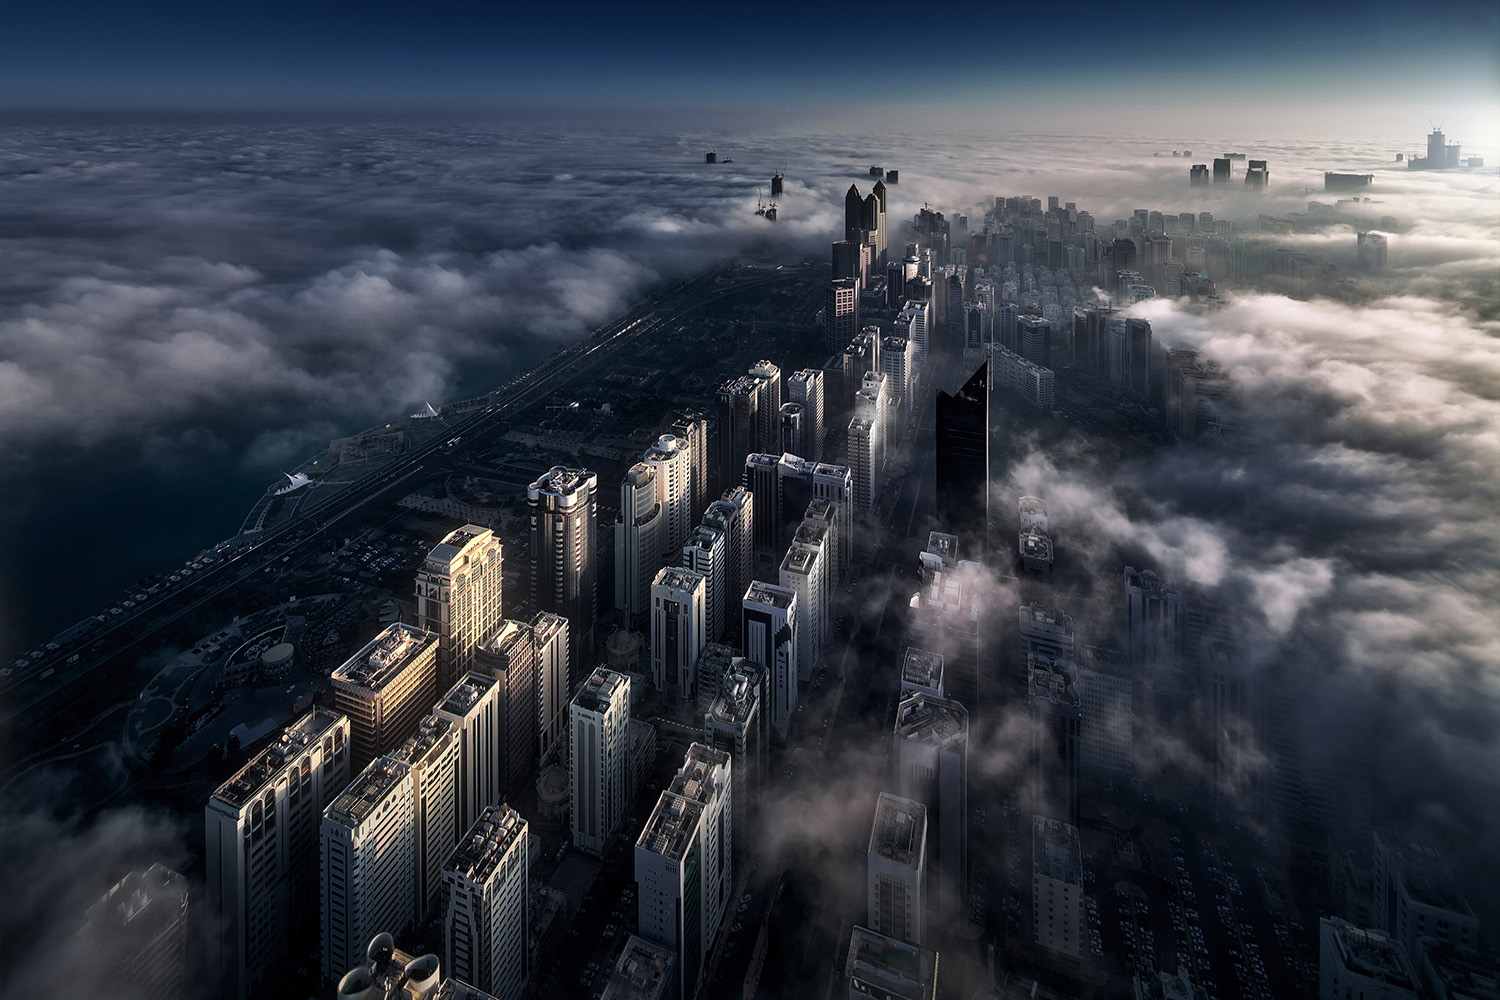 Abu Dhabi's busy downtown at sunrise, photographed from the 98th floor of a tallest structure in the Capital of the UAE